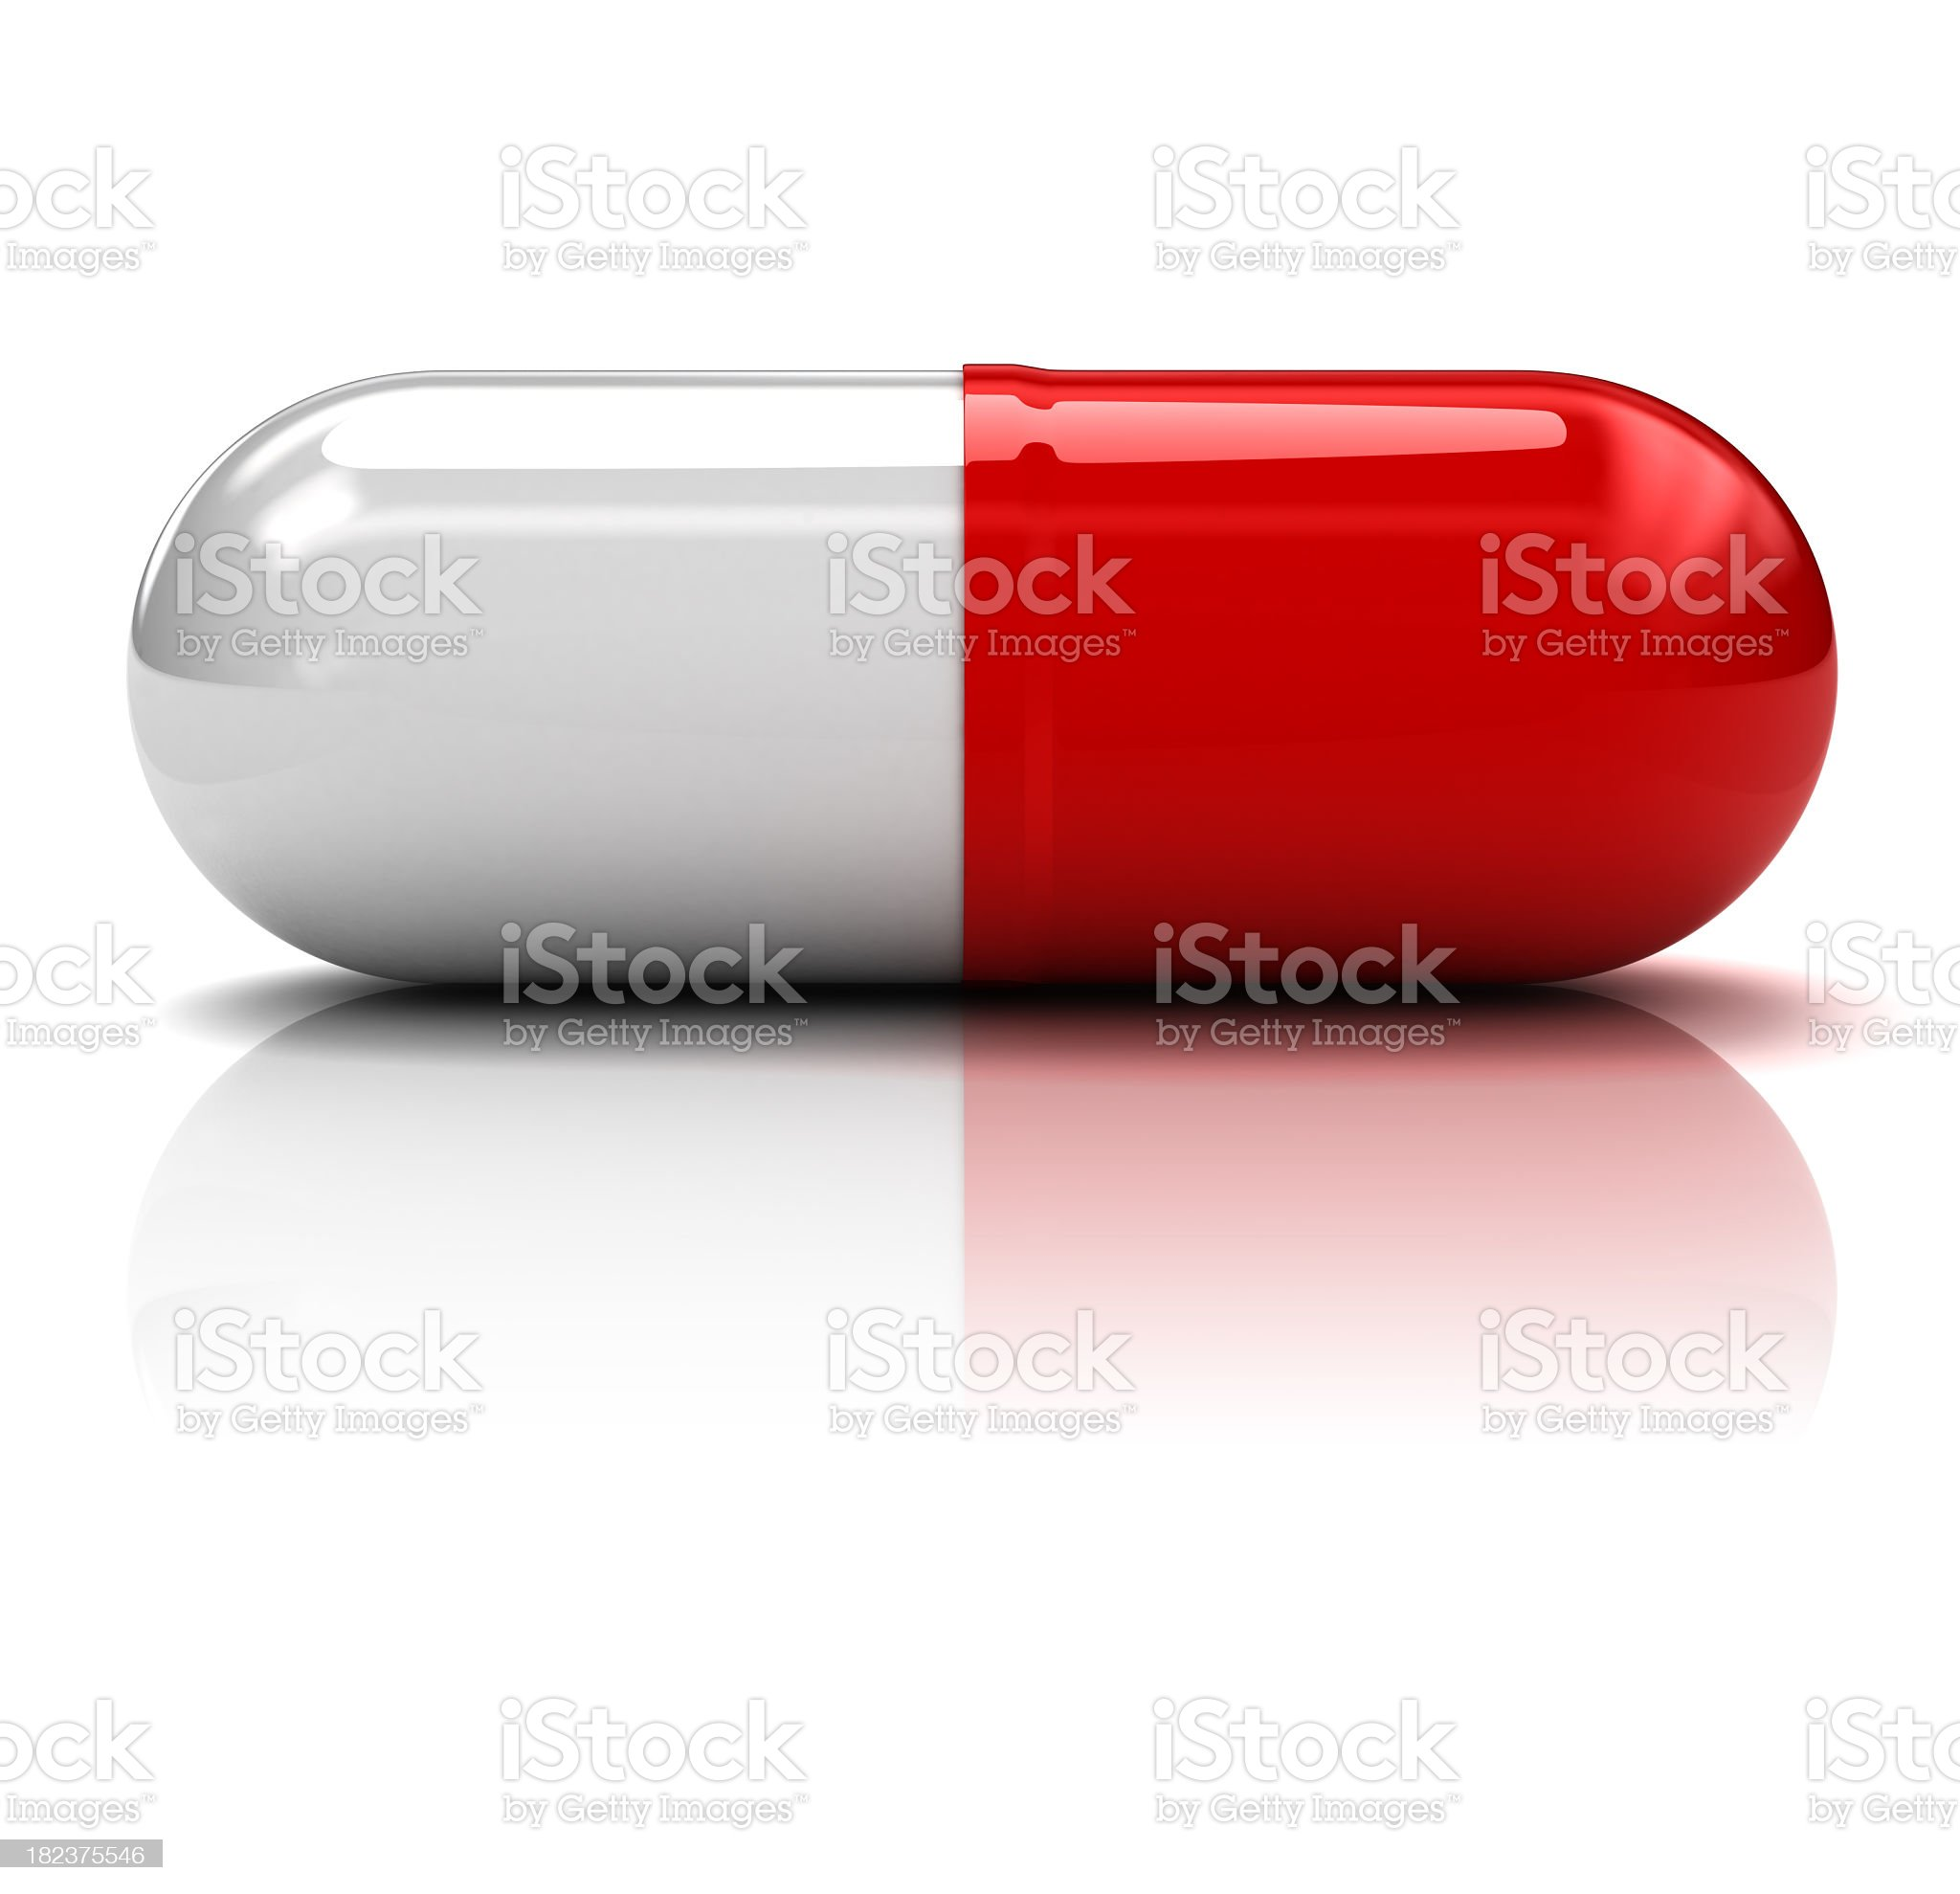 Capsule with red and white halves royalty-free stock photo